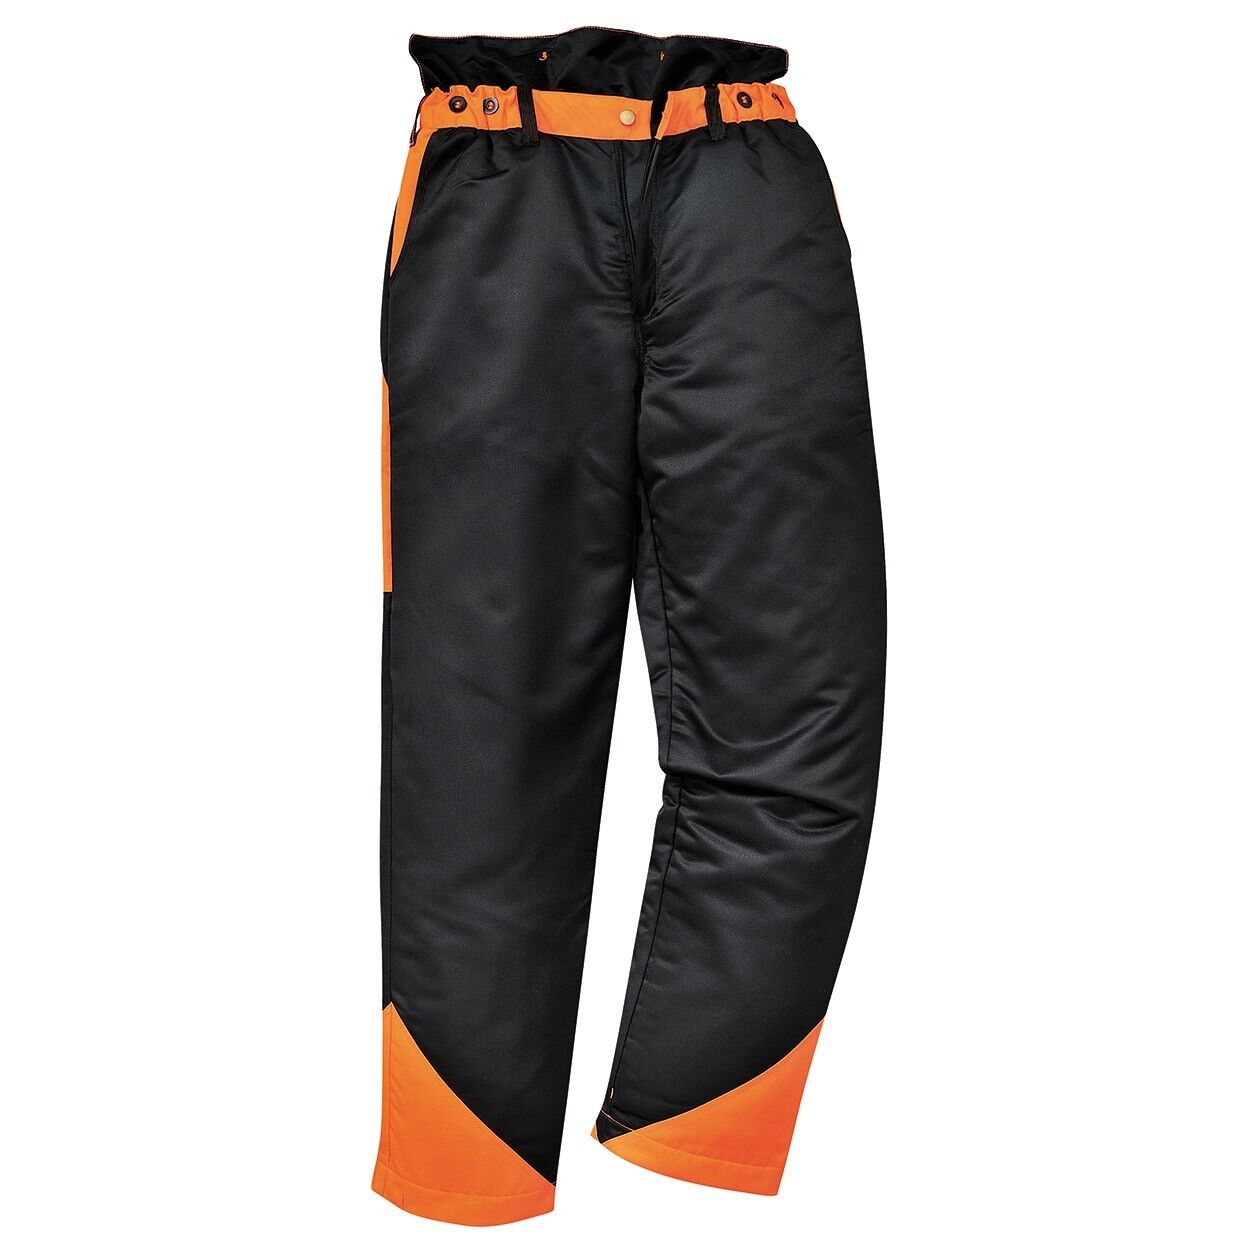 Chainsaw Safety Forestry Trousers Ideal For All Users